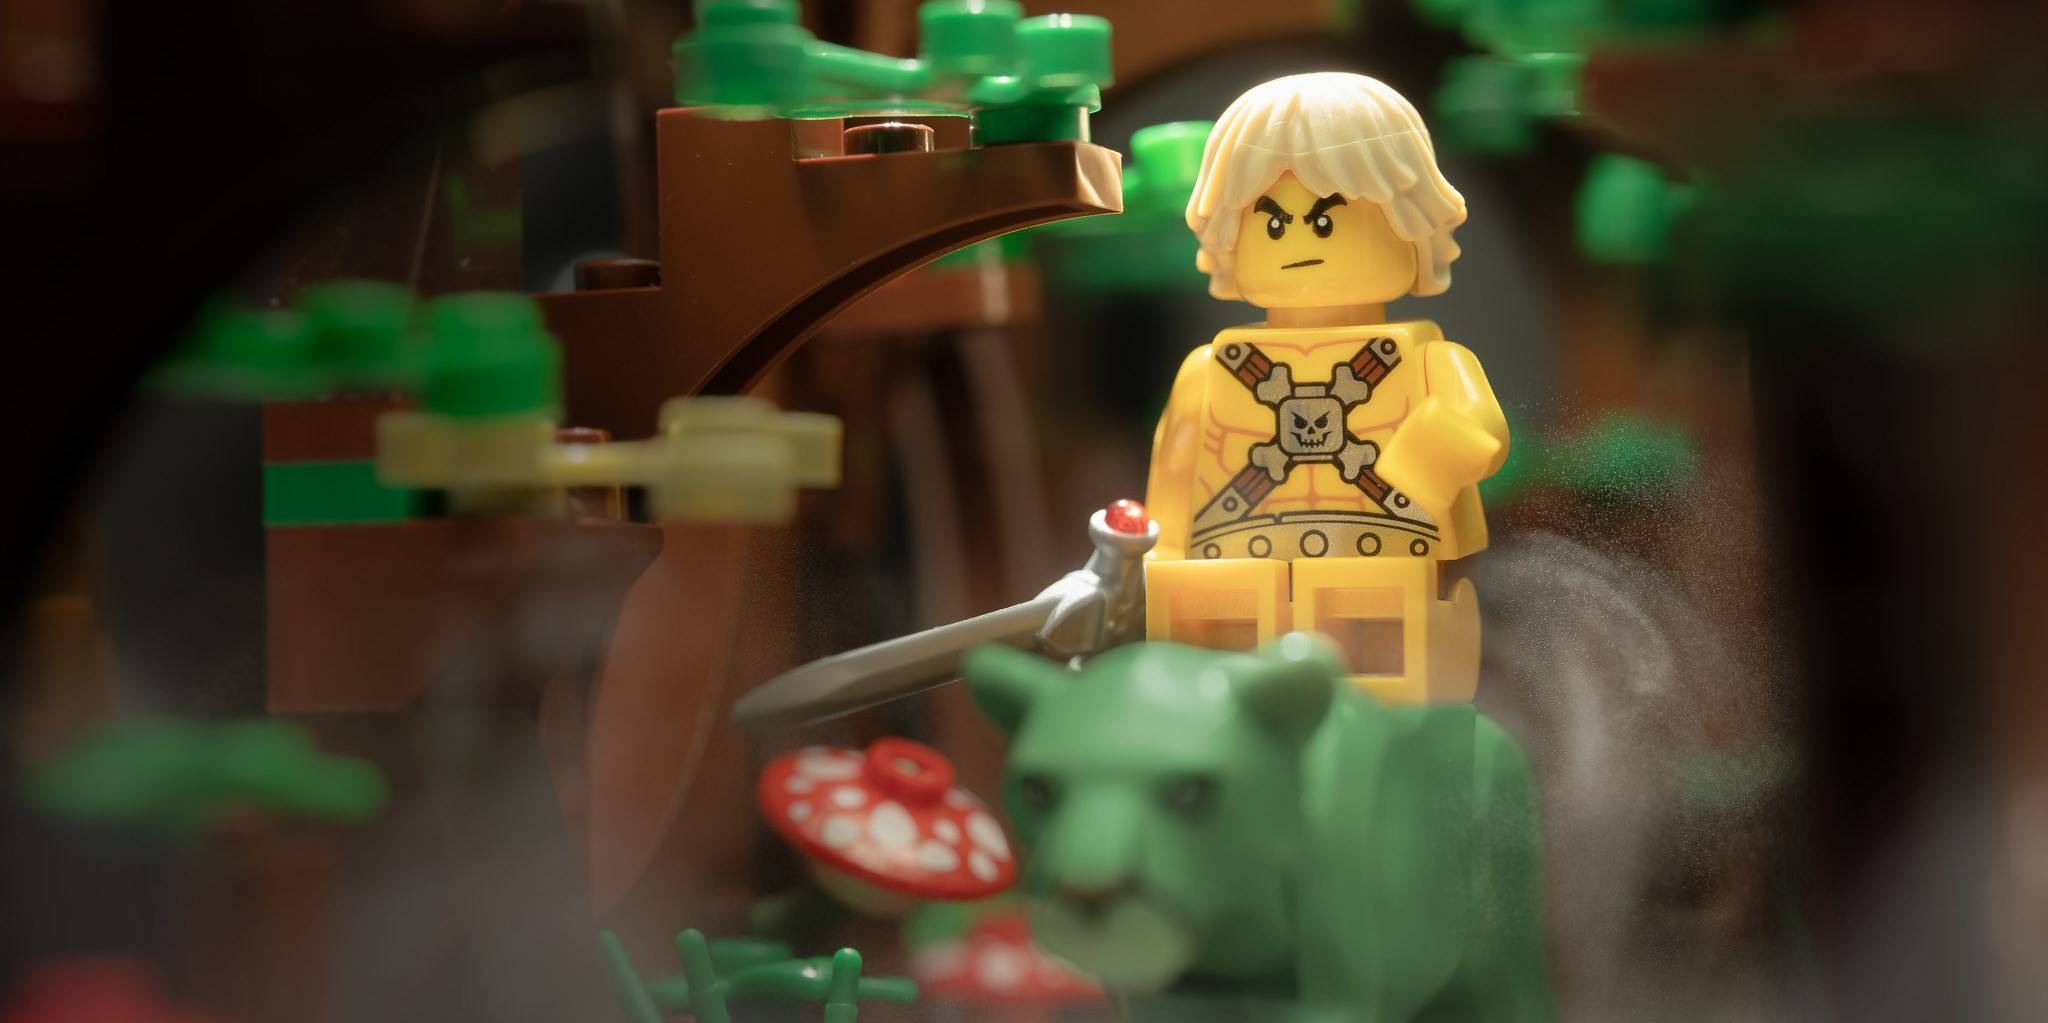 a photo of a LEGO riding a tiger, He-Man style